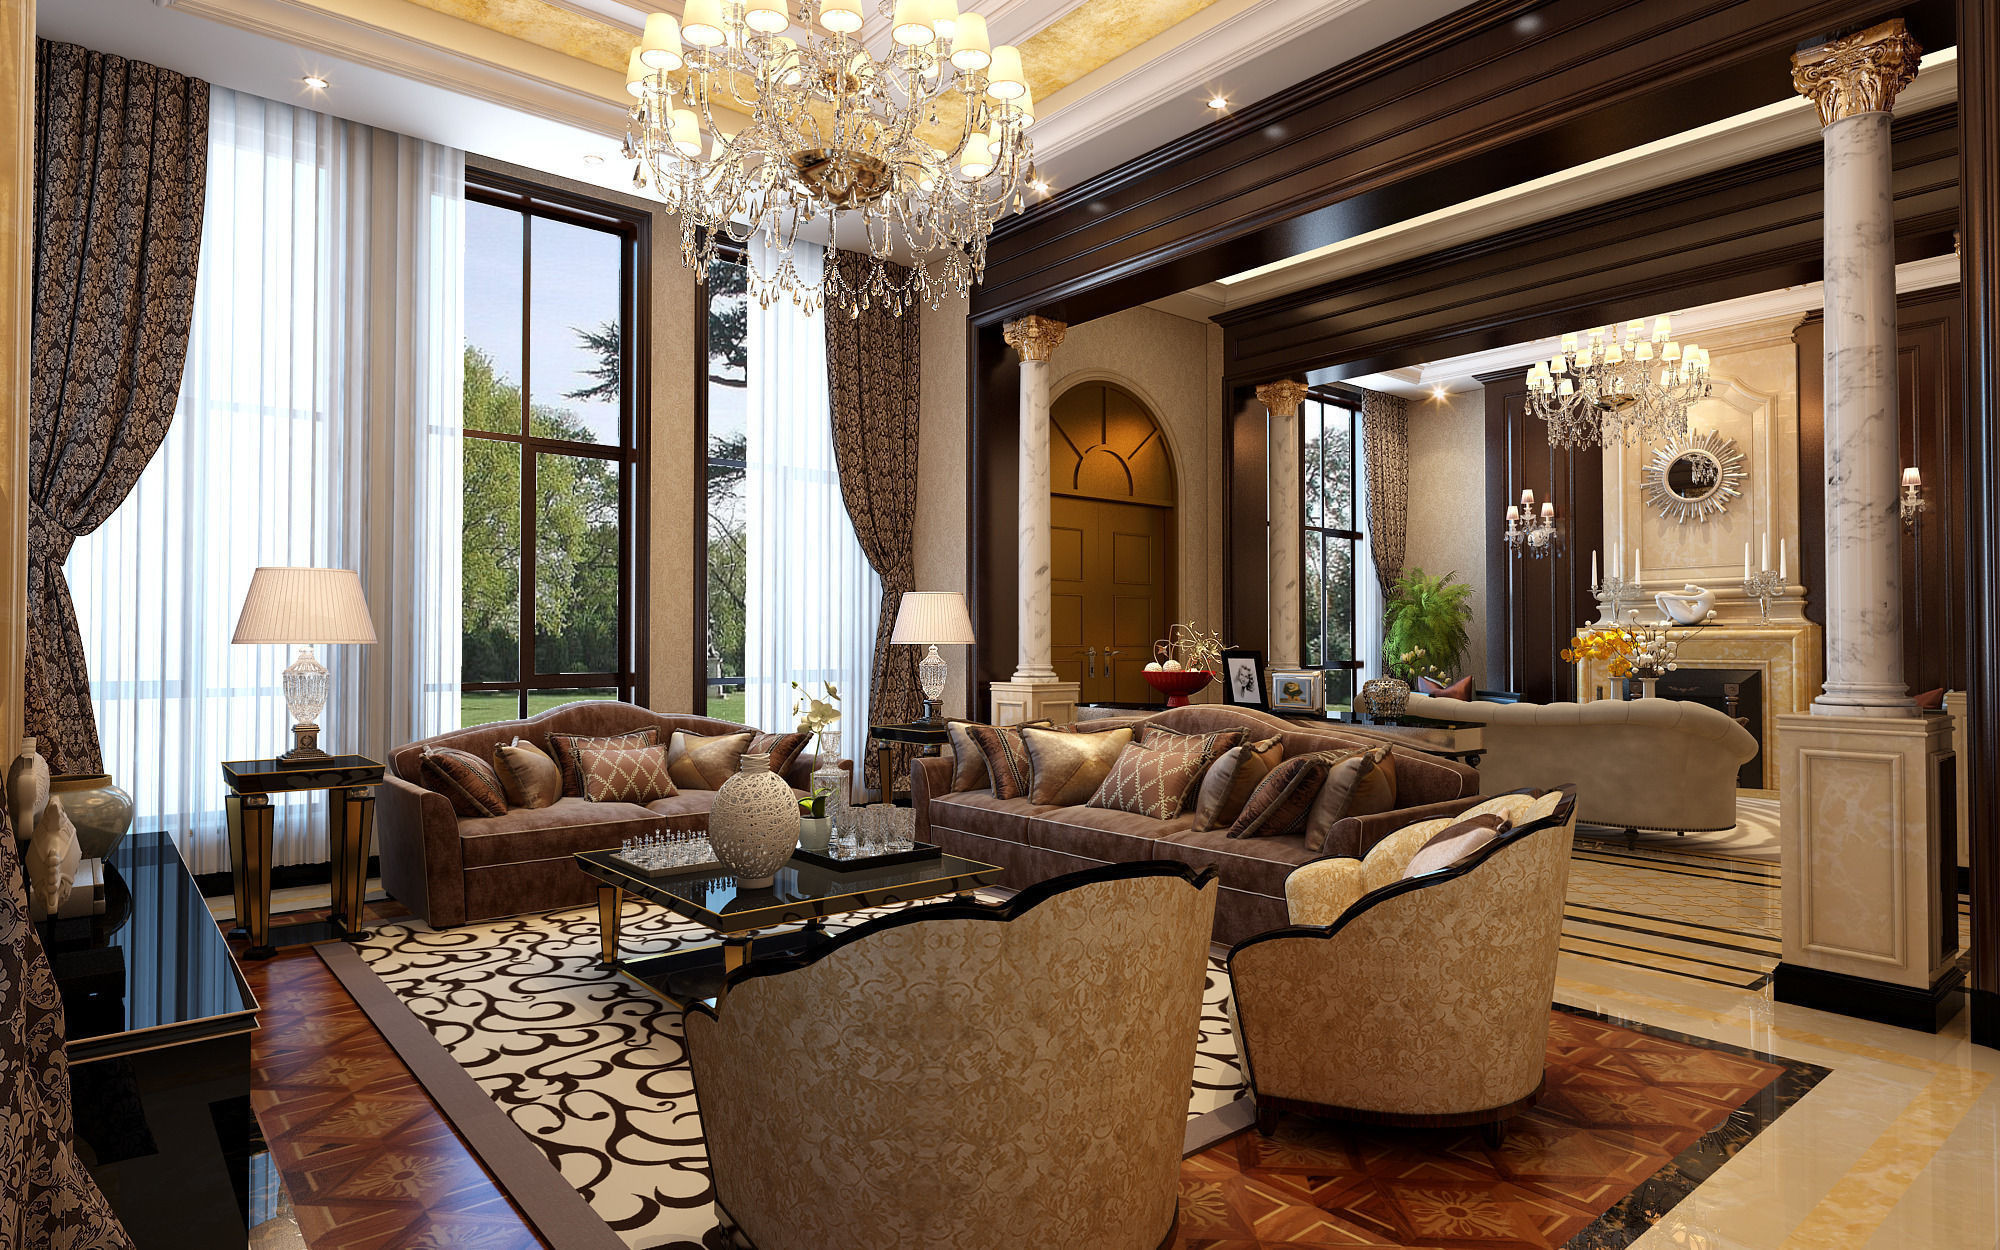 Model Living Room 3D Model Architectural Realistic Living Room Design